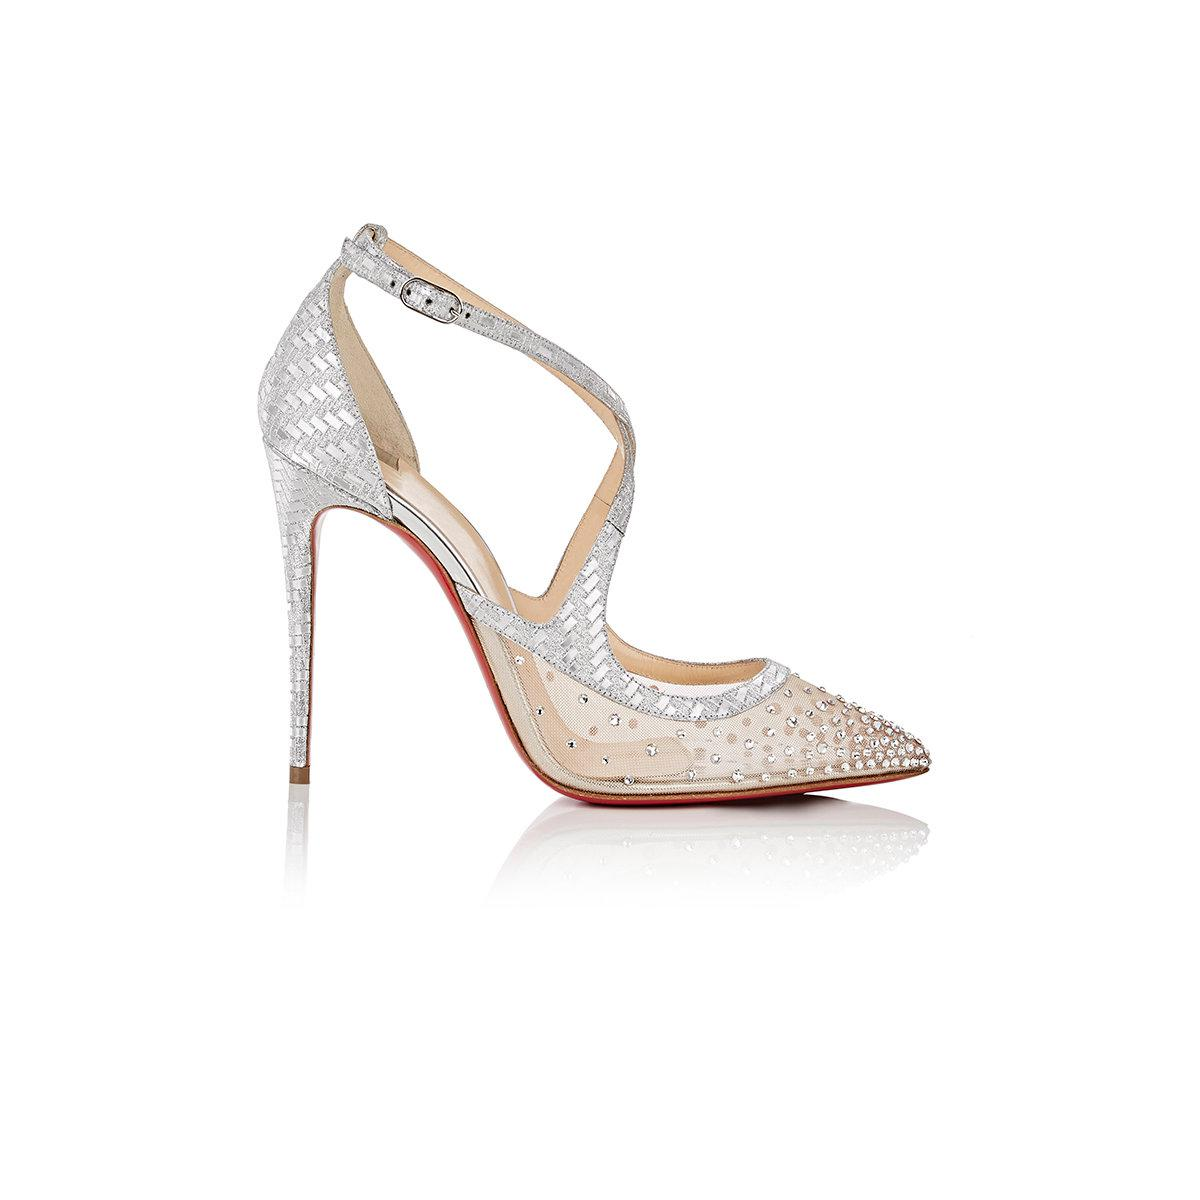 3d6cce7bf3d Lyst - Christian Louboutin Twistissima Strass Ankle in White